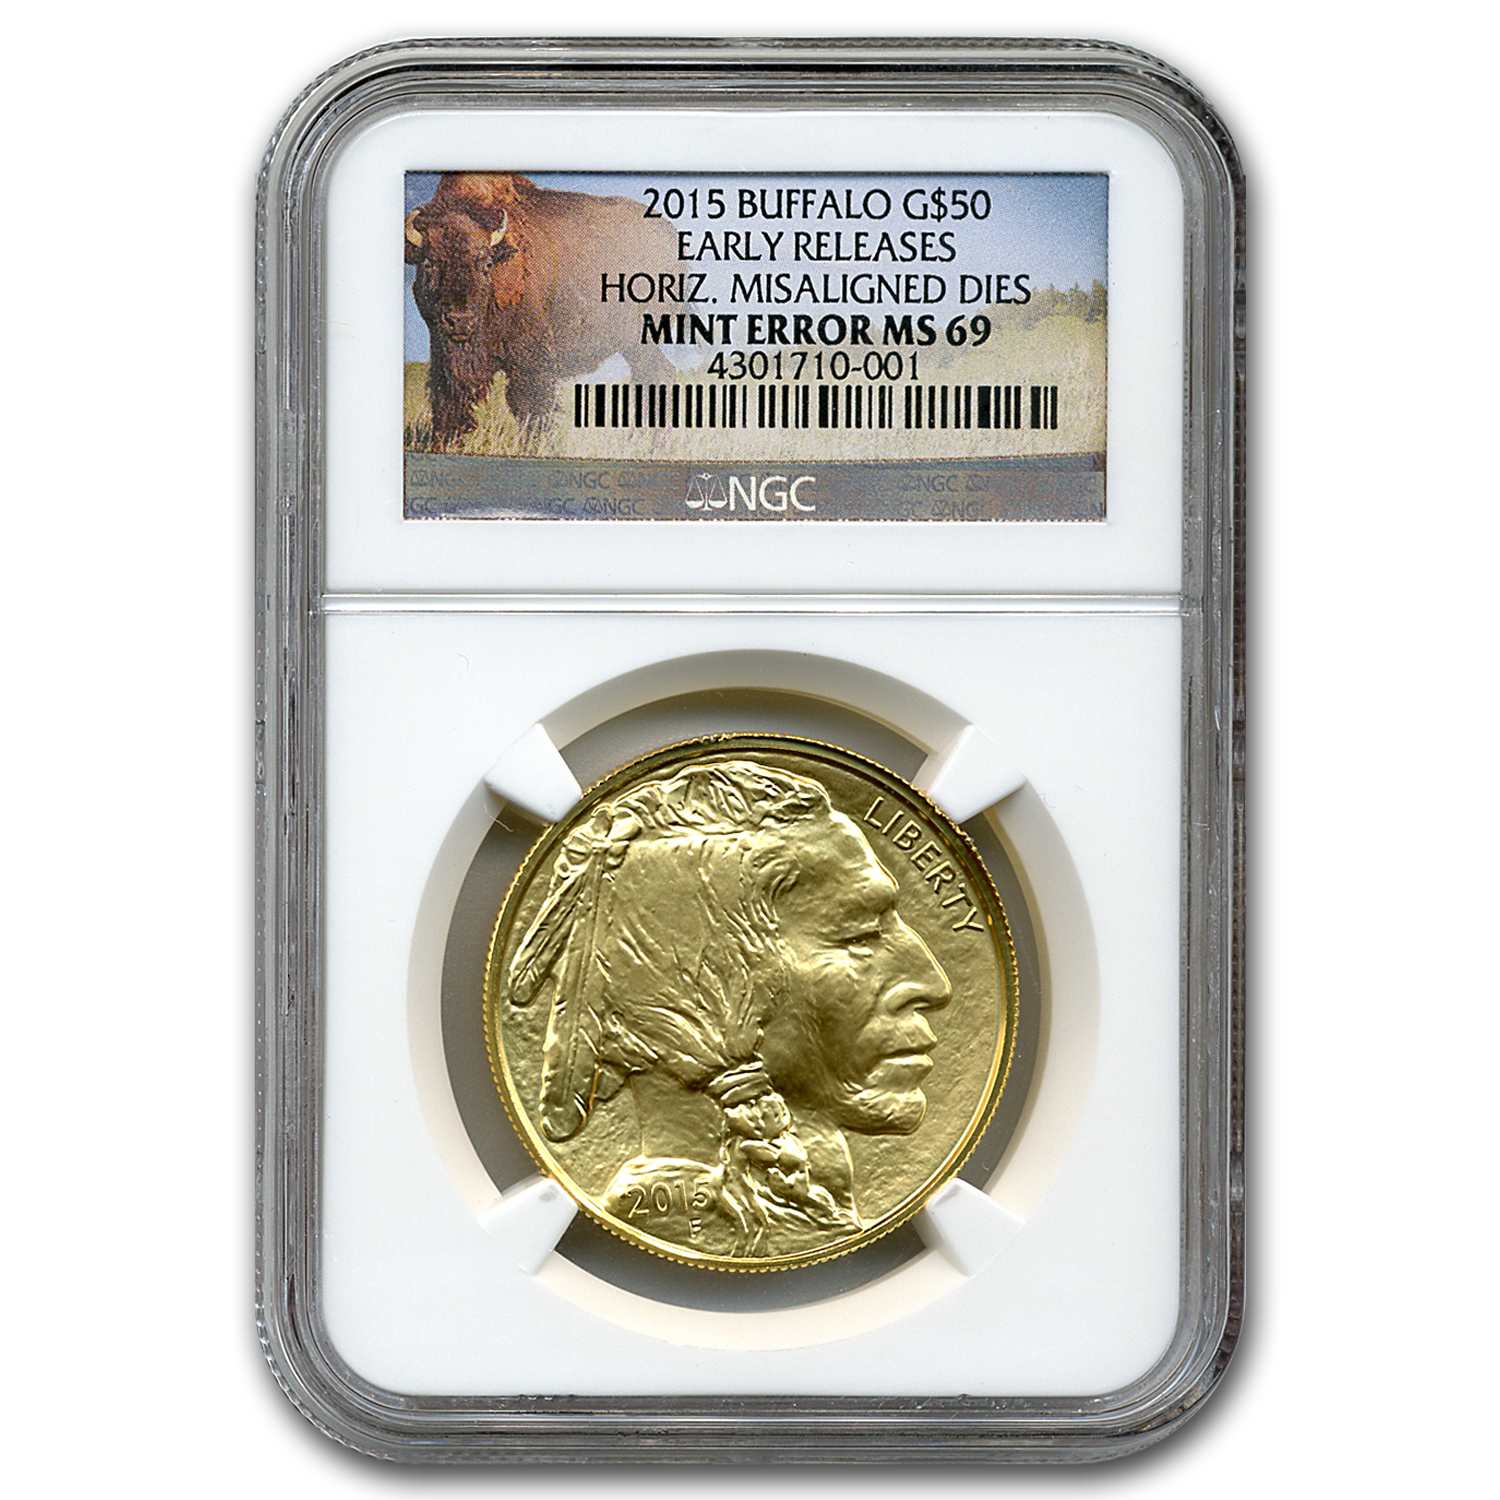 2015 1 oz Gold Buffalo MS-69 NGC (Horiz Misaligned Dies Error)